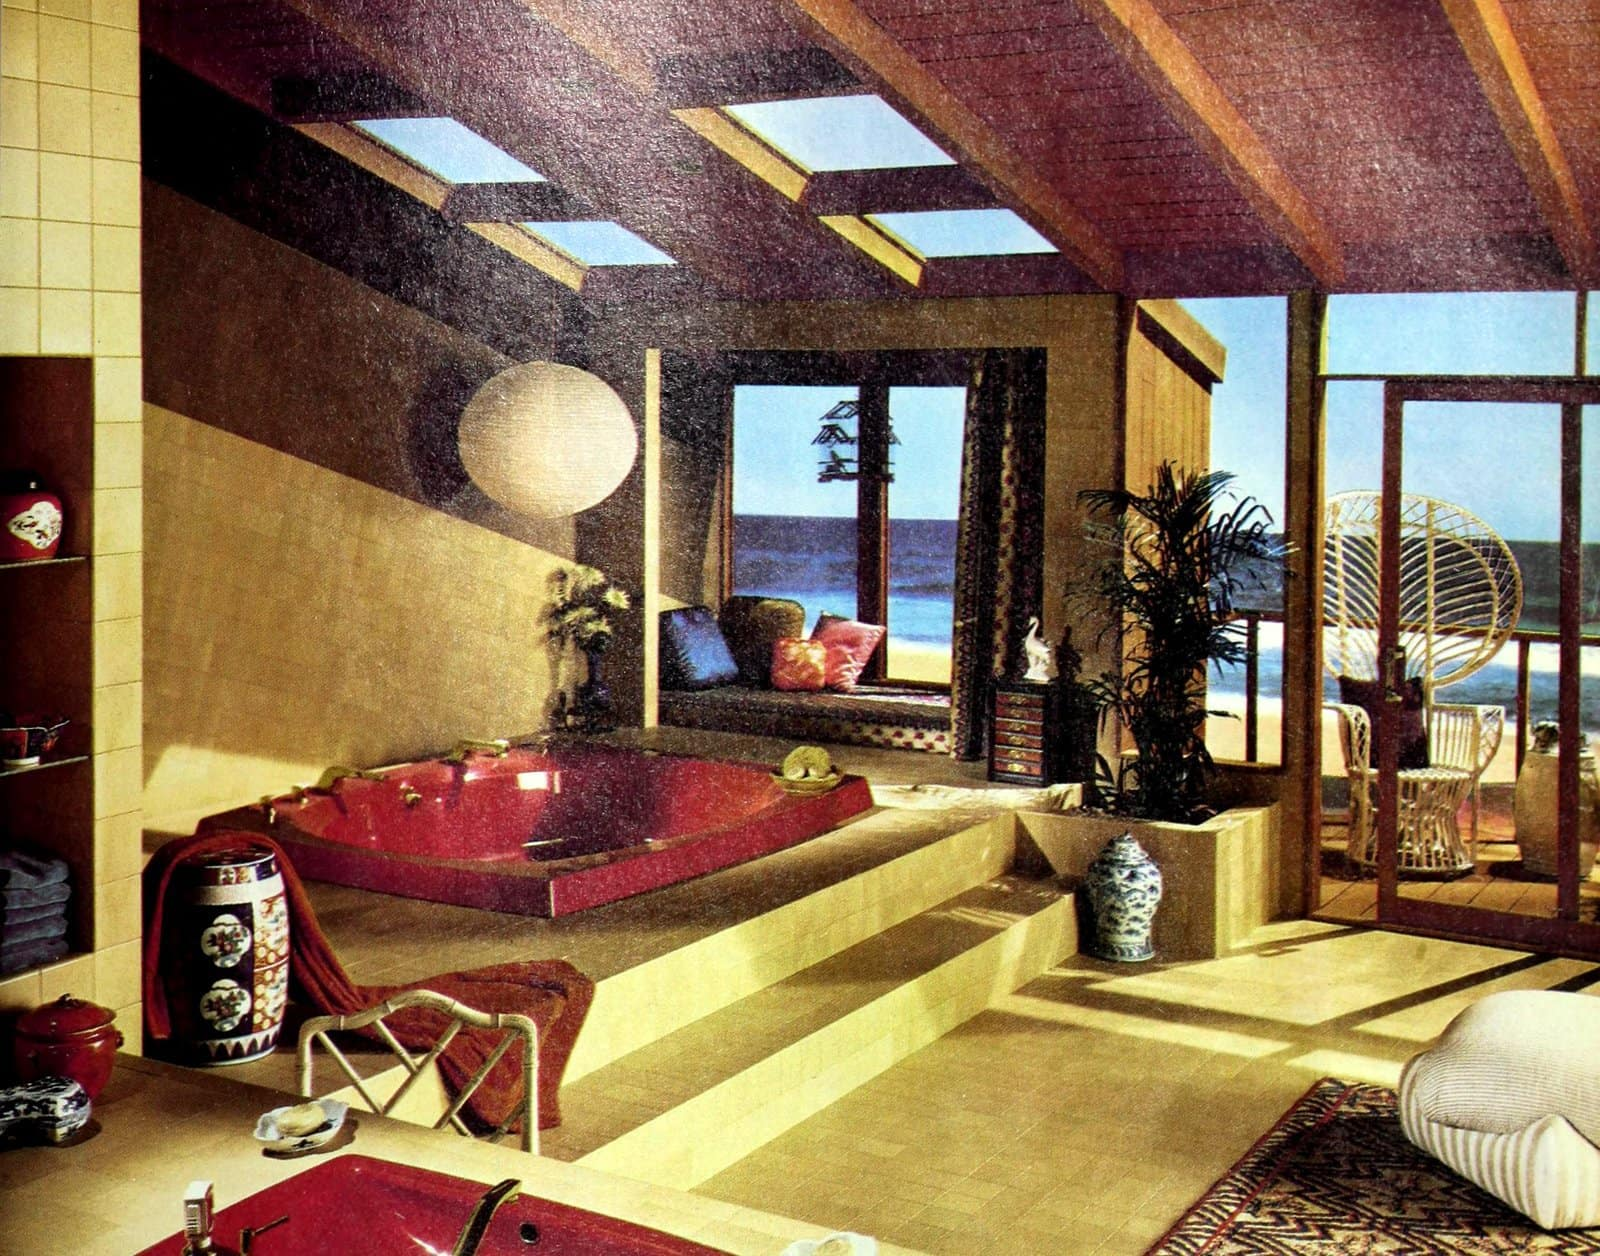 Big yellow and red bathroom with skylights (1981)